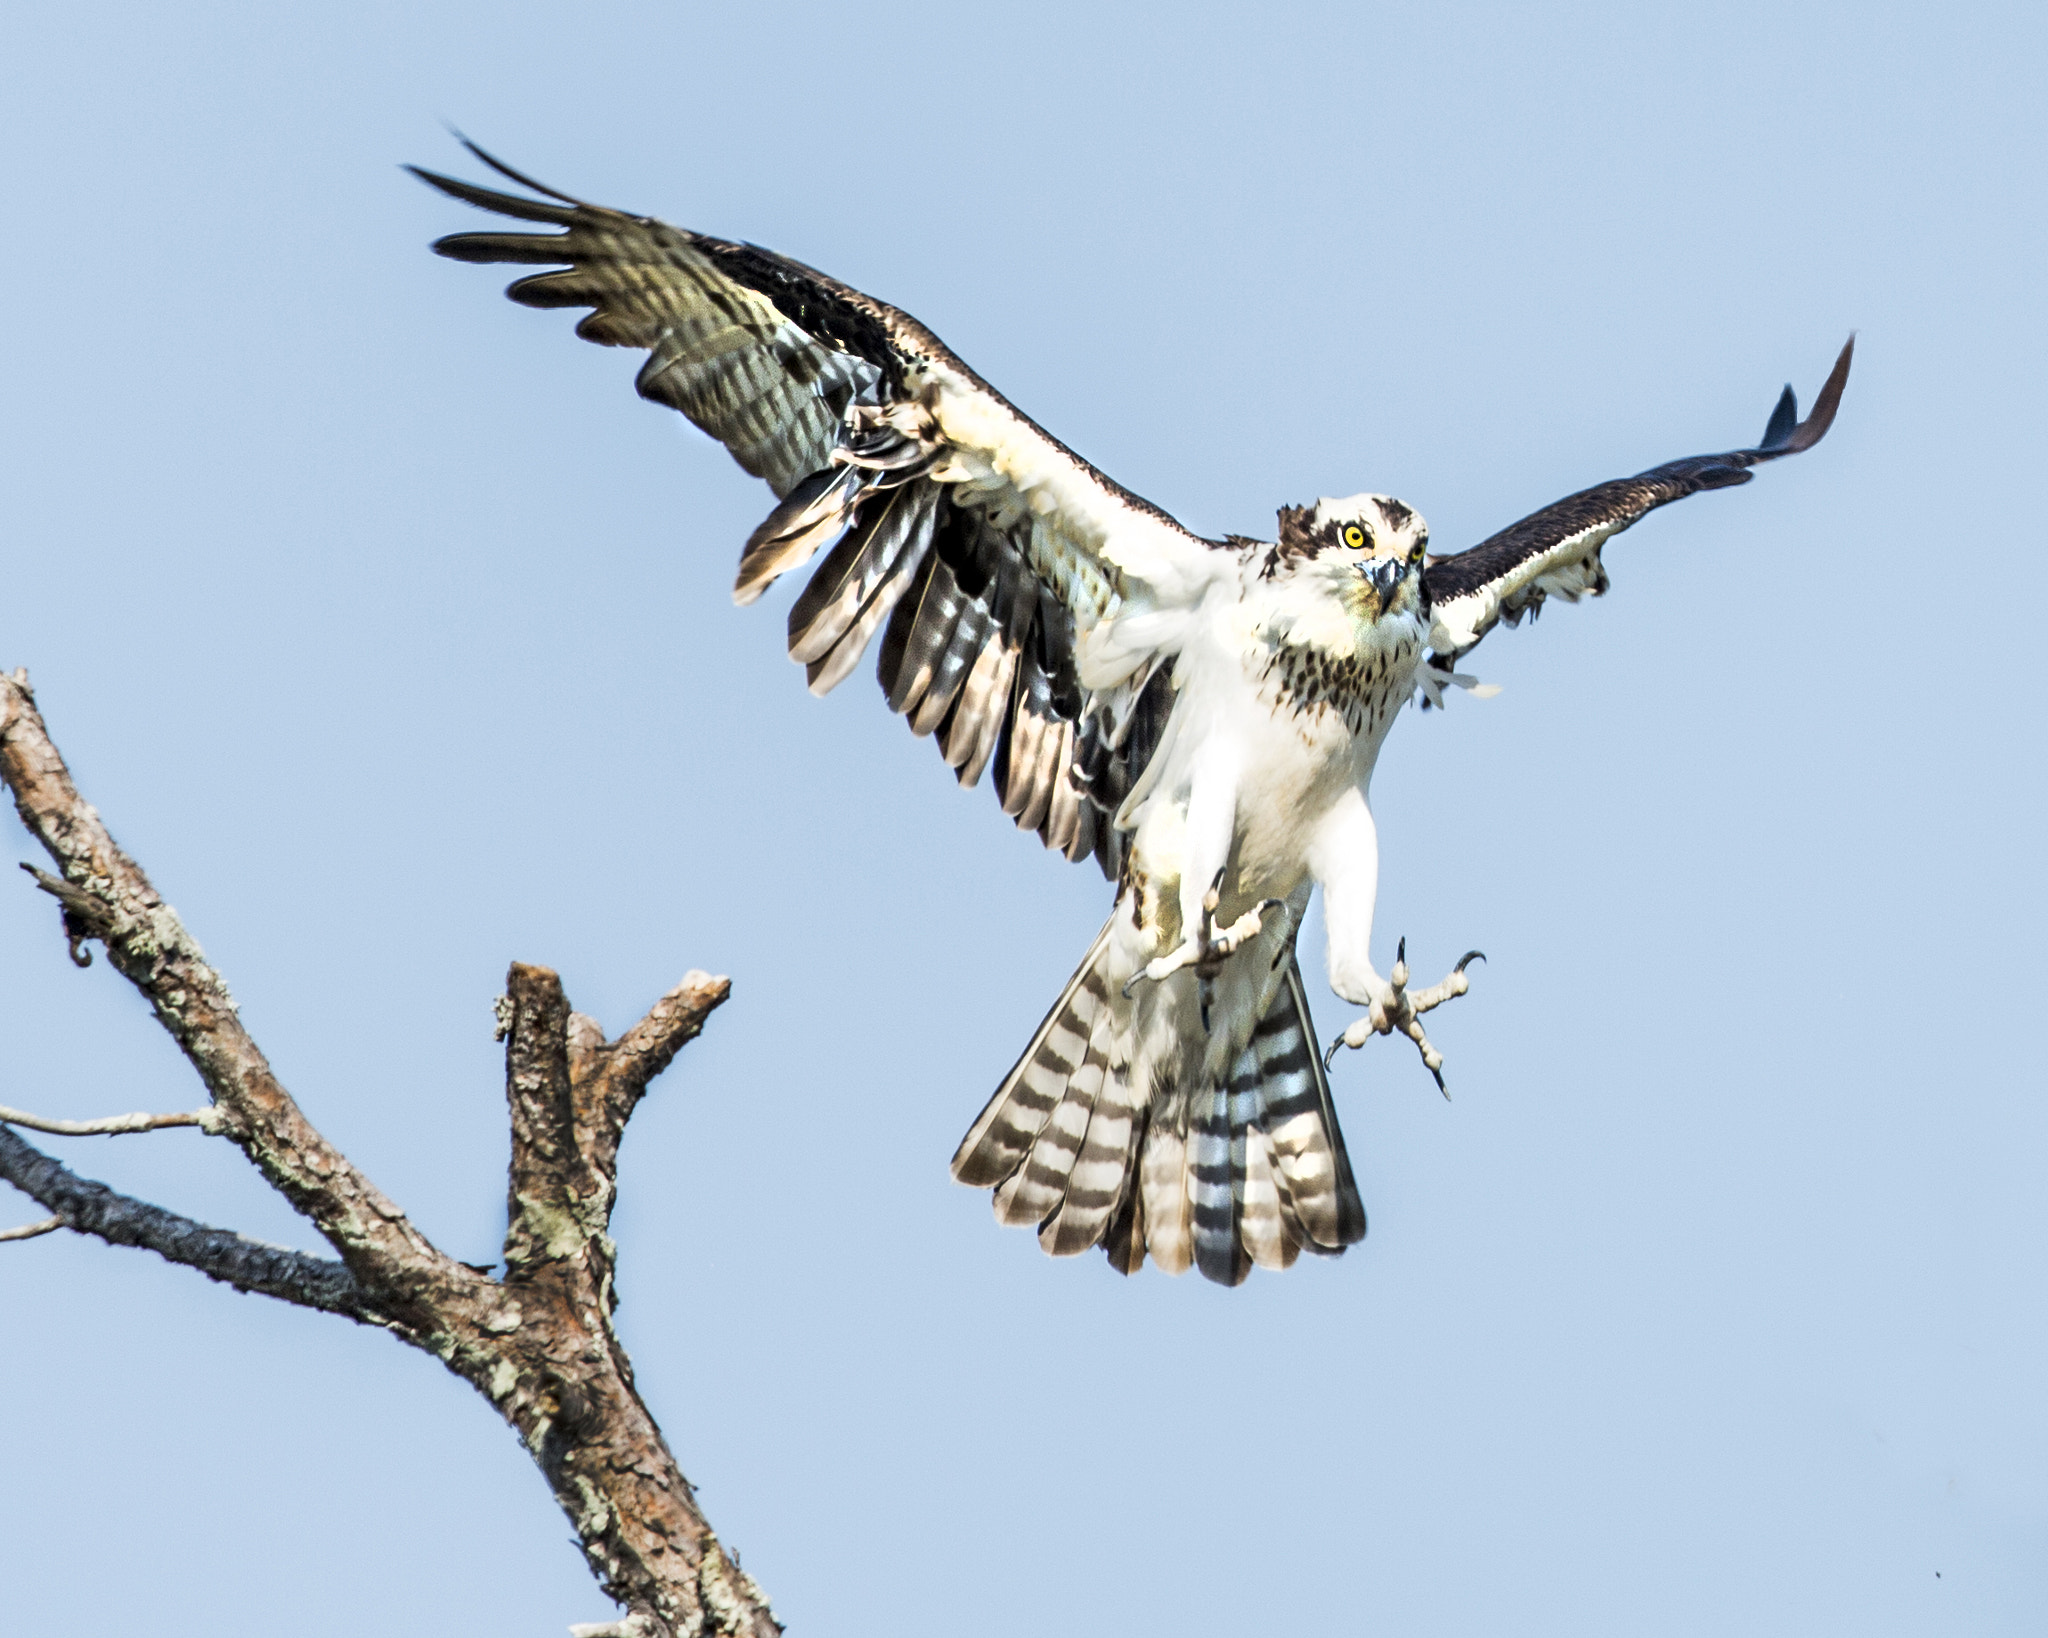 Photograph EIGHT POINT LANDING !! by Dale Lorenzen on 500px